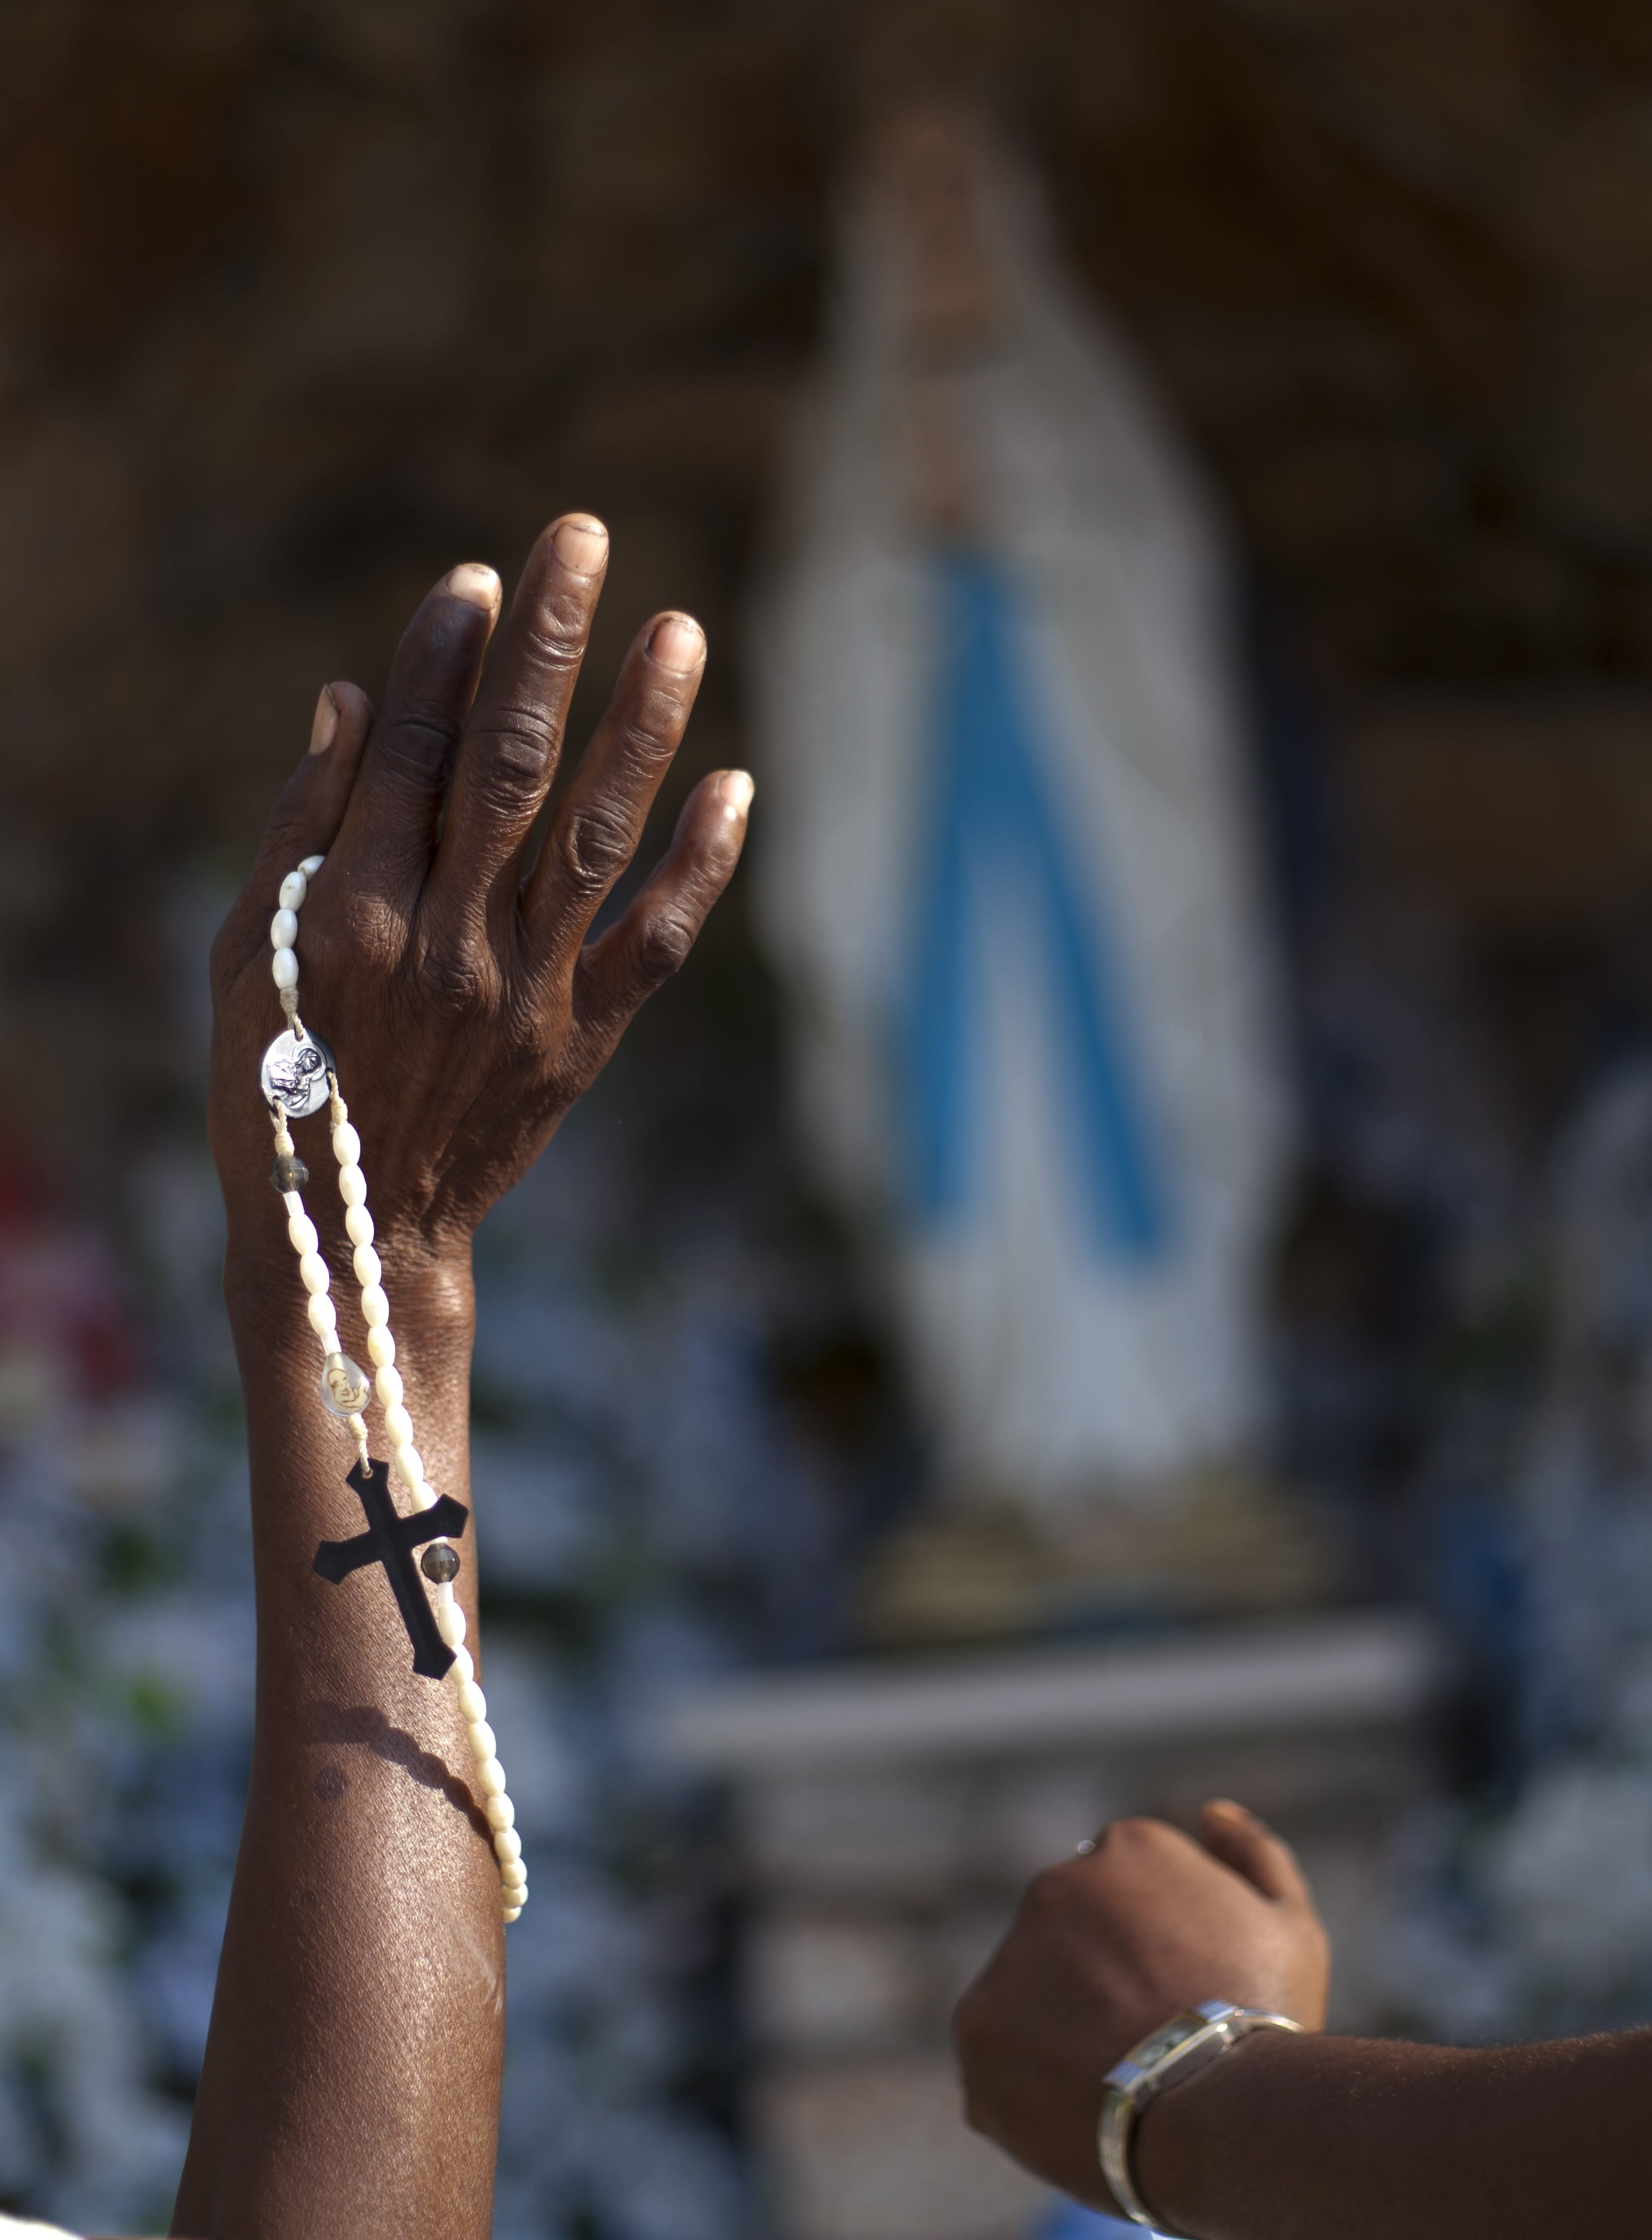 A woman holds up her rosary wrapped hand in praise in front of a statue of the Virgin Mary at Saint Yves Catholic church in Port-au-Prince, Haiti. Thursday, March 14, 2013. Latin Americans reacted with joy on Wednesday at news that Pope Francis, Argentina's former cardinal Jorge Mario Bergoglio, had become the first pope ever from the Americas. Francis began his first day as pope, on Thursday, making an early morning visit in a simple Vatican car to a Roman basilica dedicated to the Virgin Mary and prayed before an icon of the Madonna. (AP Photo/Dieu Nalio Chery)